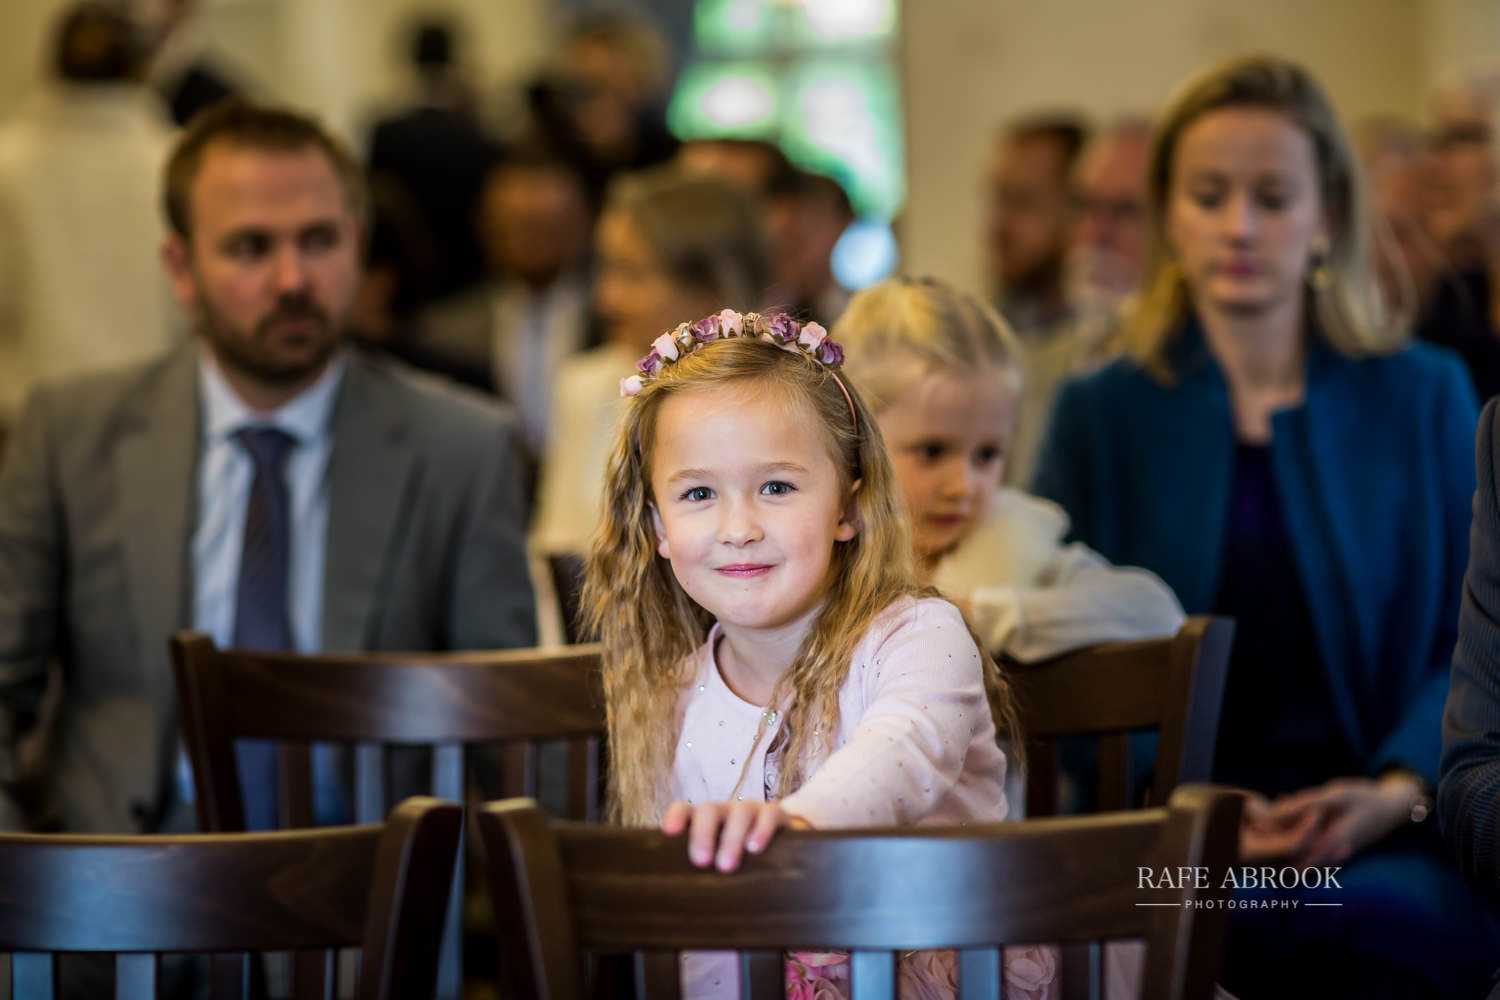 thursley village hall guildford surrey wedding hertfordshire wedding photographer-1100.jpg